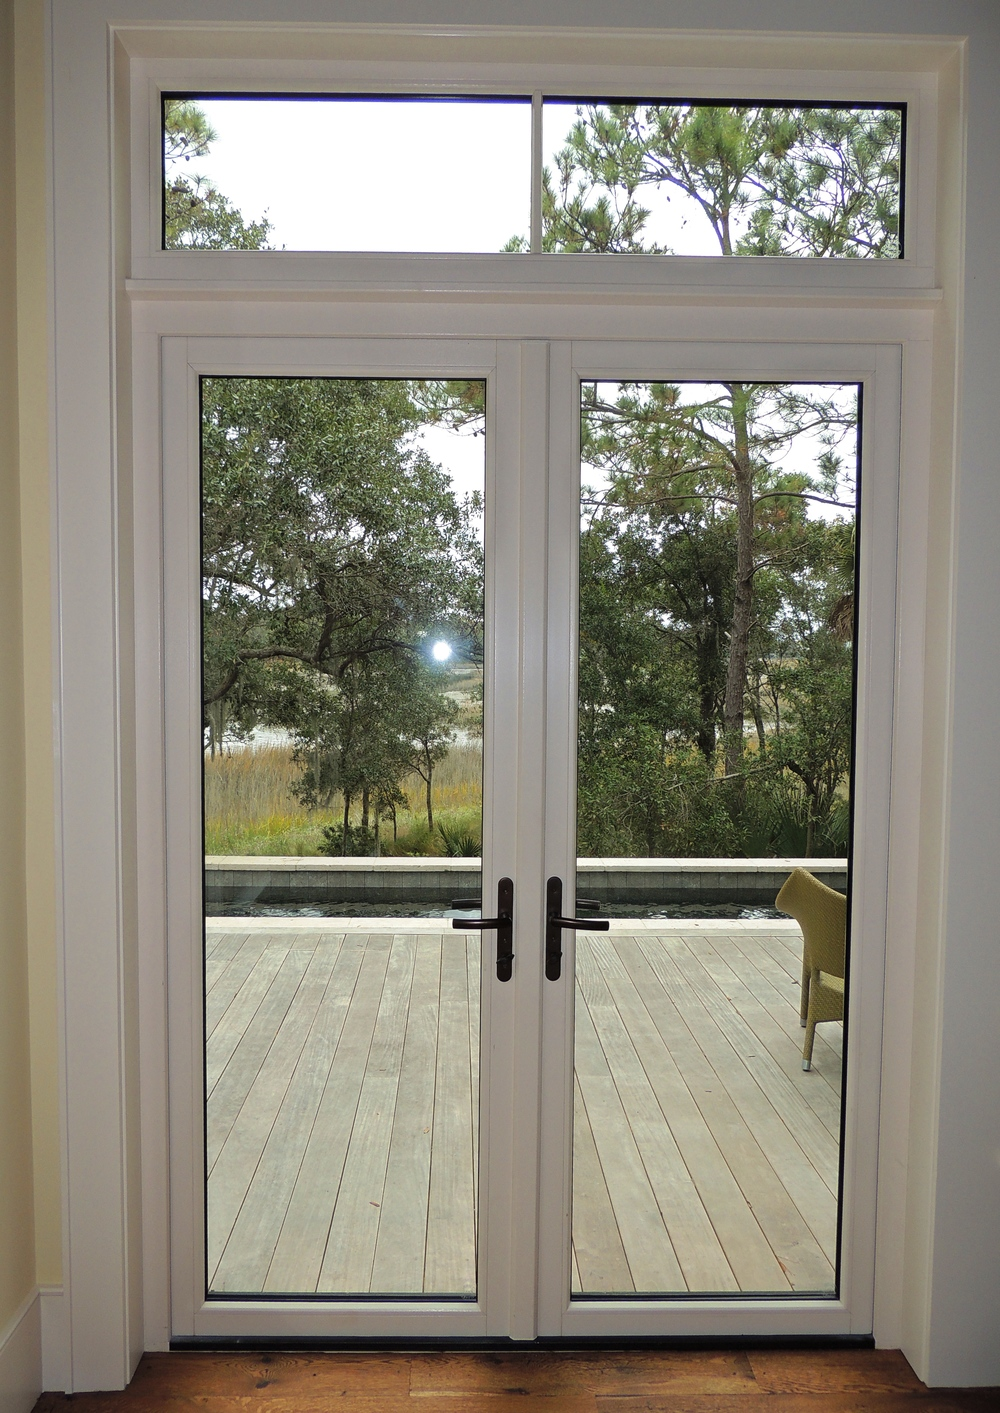 French doors henselstone window and door systems inc 2013 hgtv dream home french door rubansaba